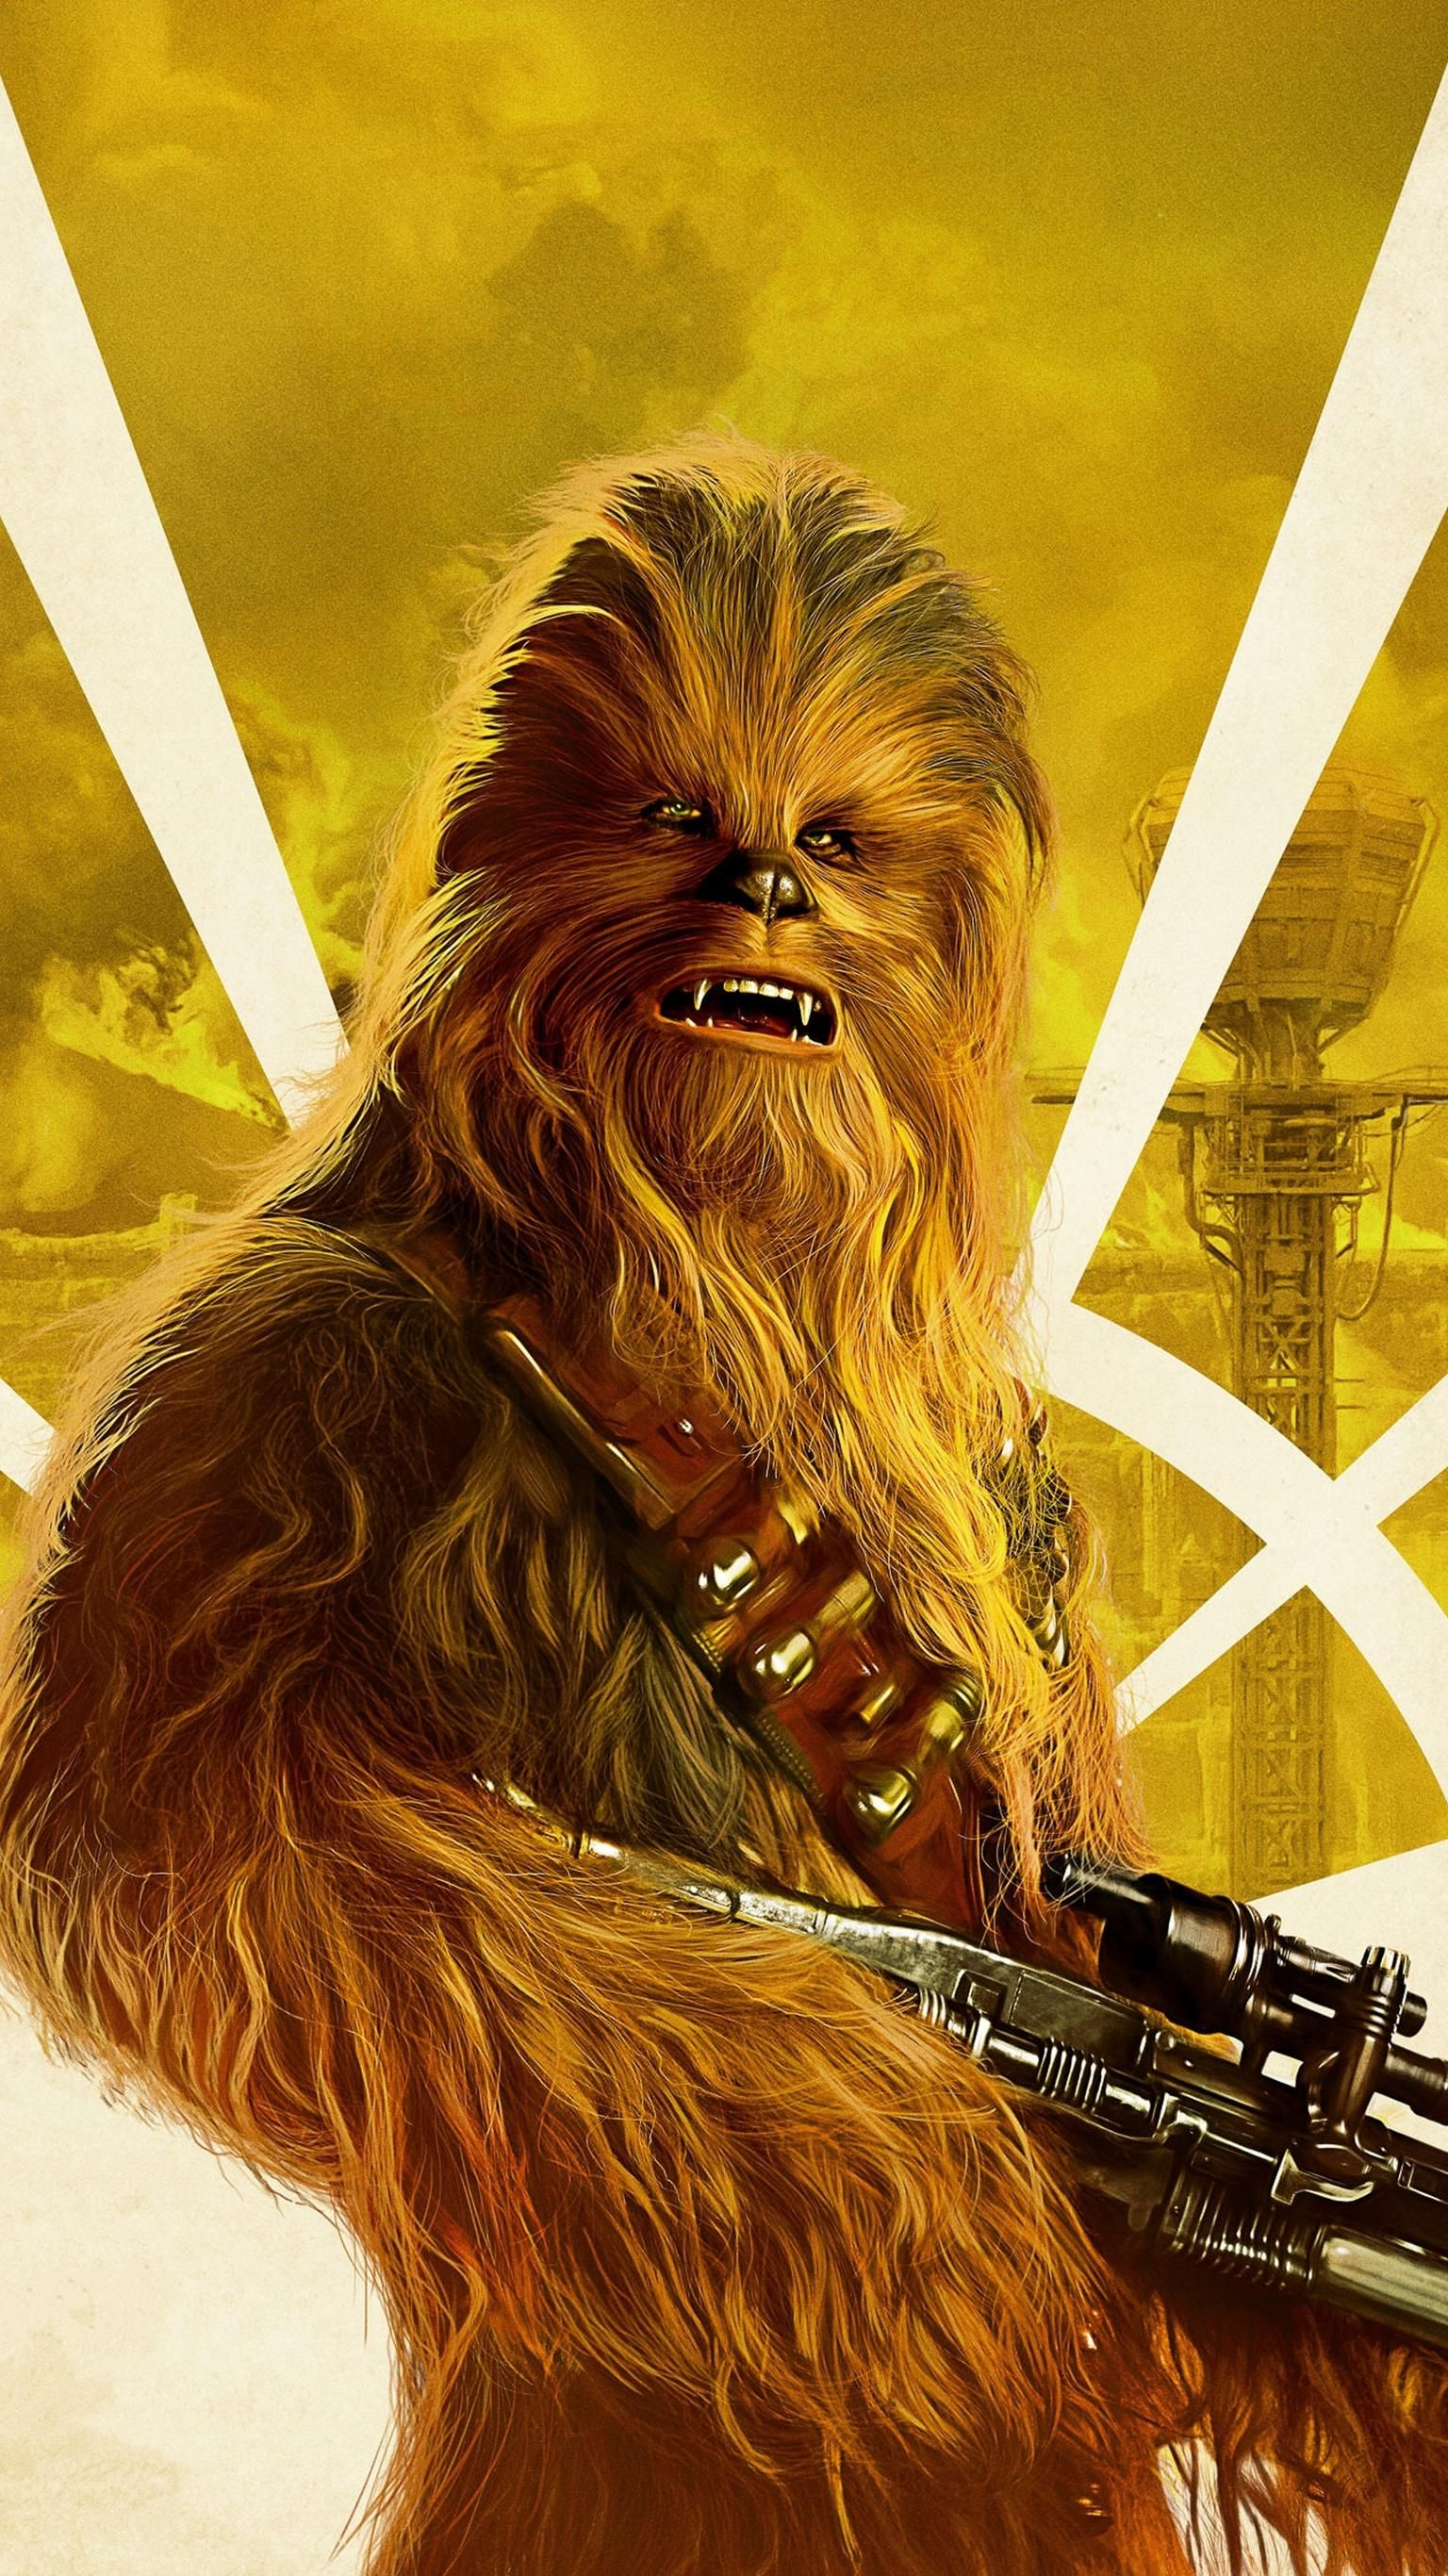 Solo A Star Wars Story 2018 Phone Wallpaper Moviemania In 2020 Star Wars Chewbacca Star Wars Poster Star Wars Wallpaper